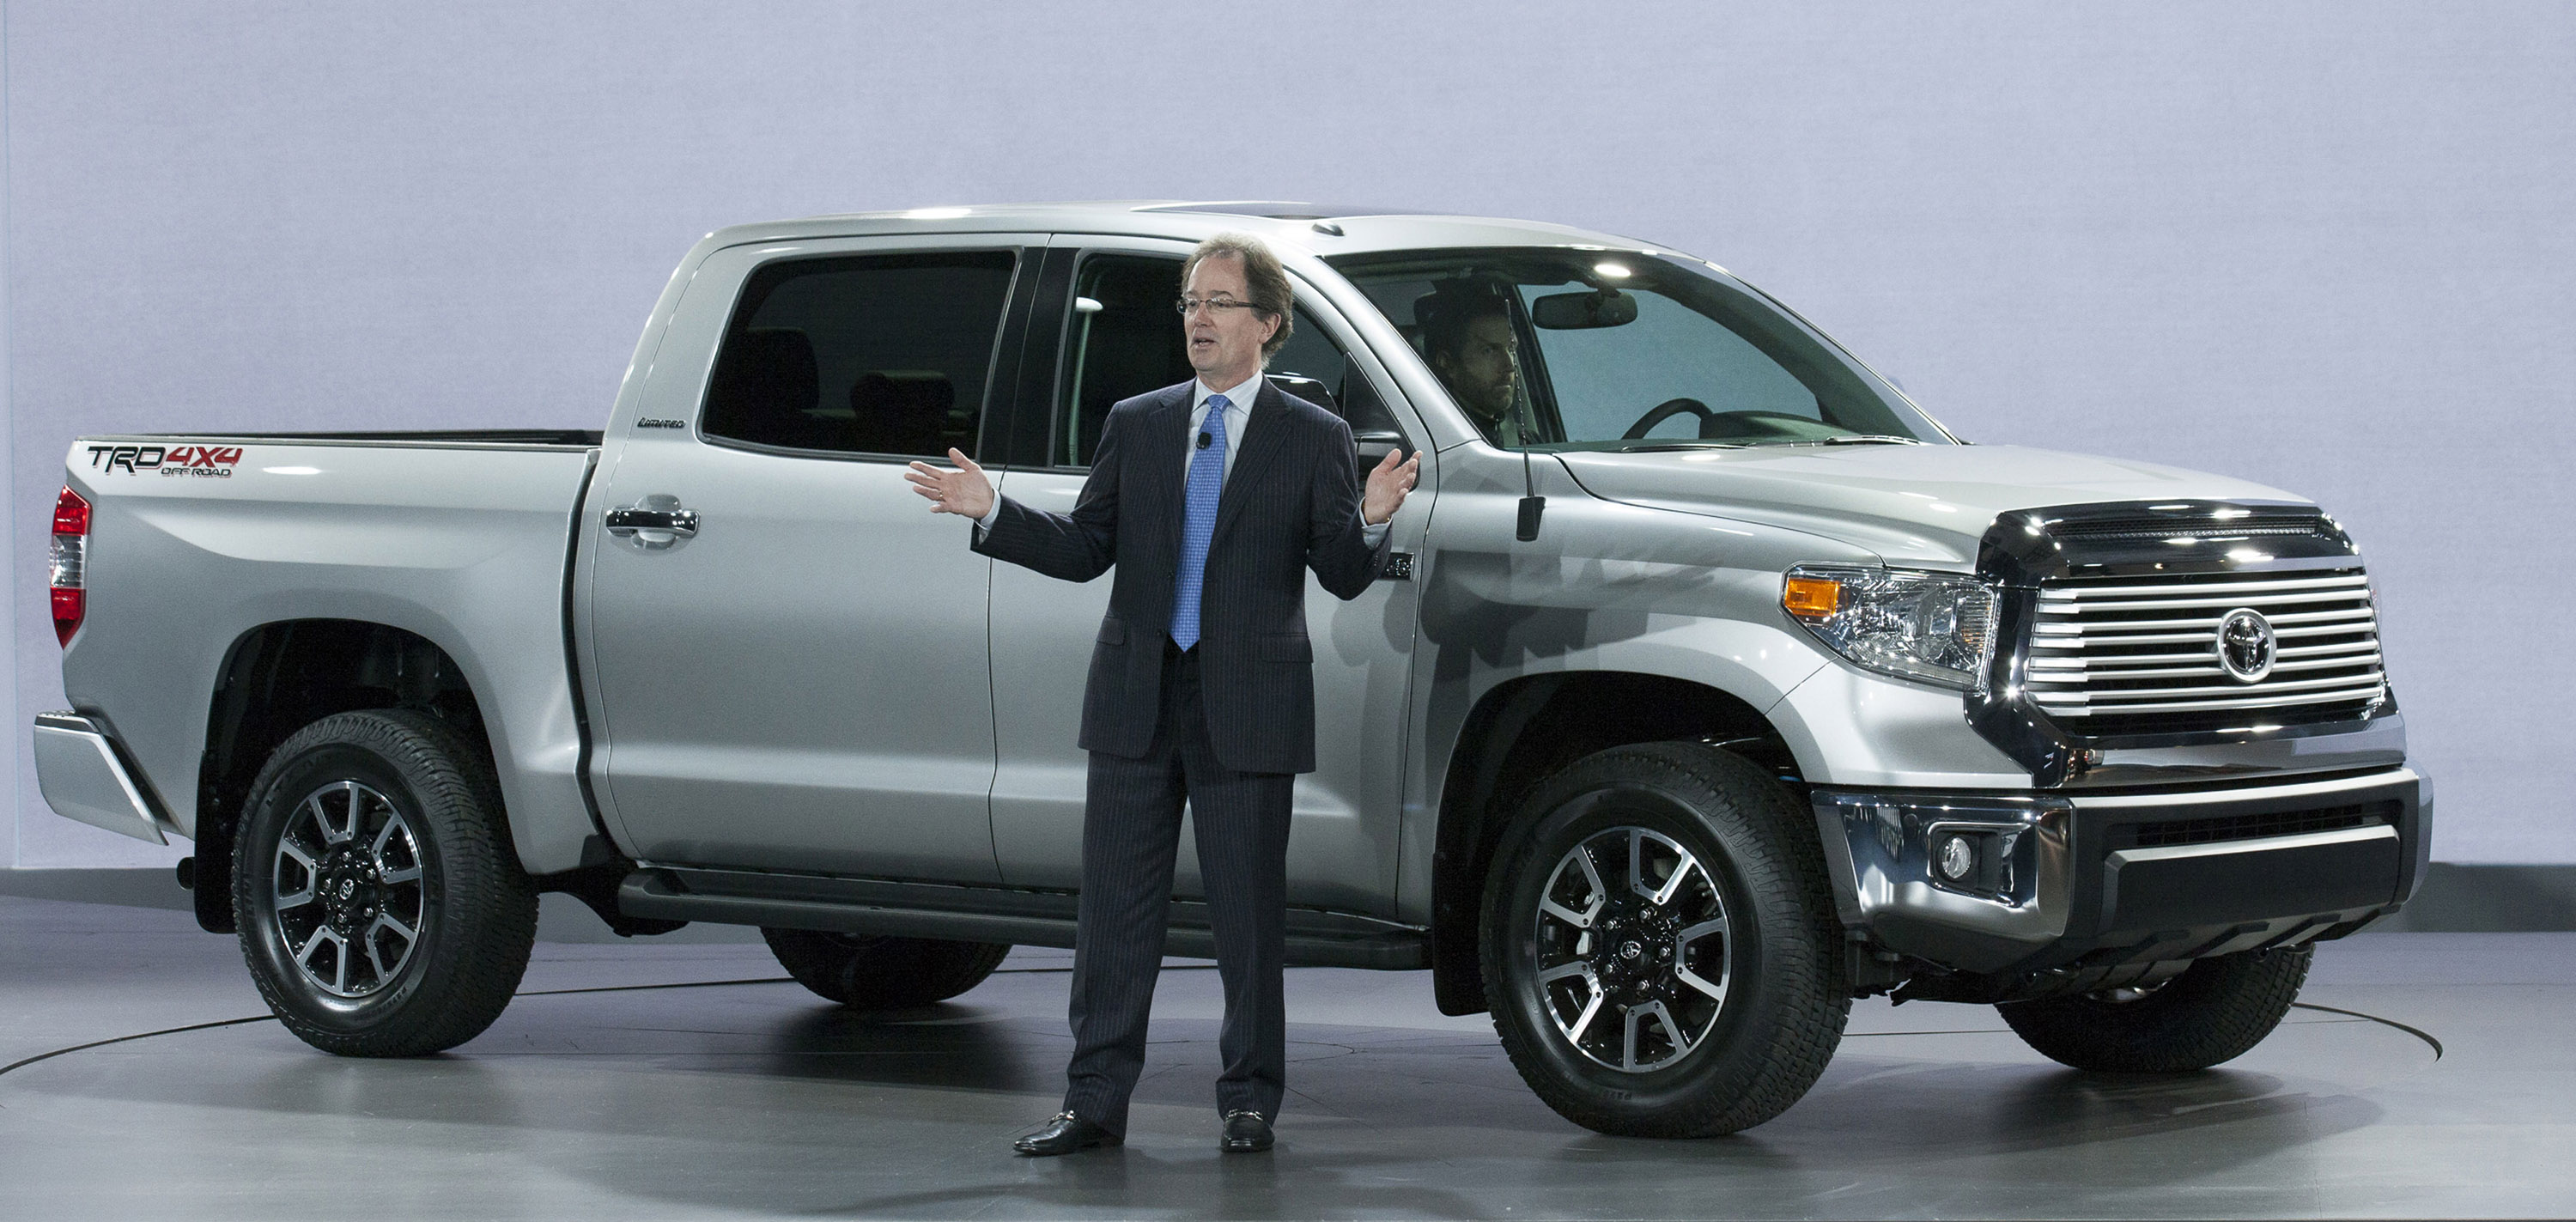 Toyota Launches Production Of 2014 Corolla And Tundra Models